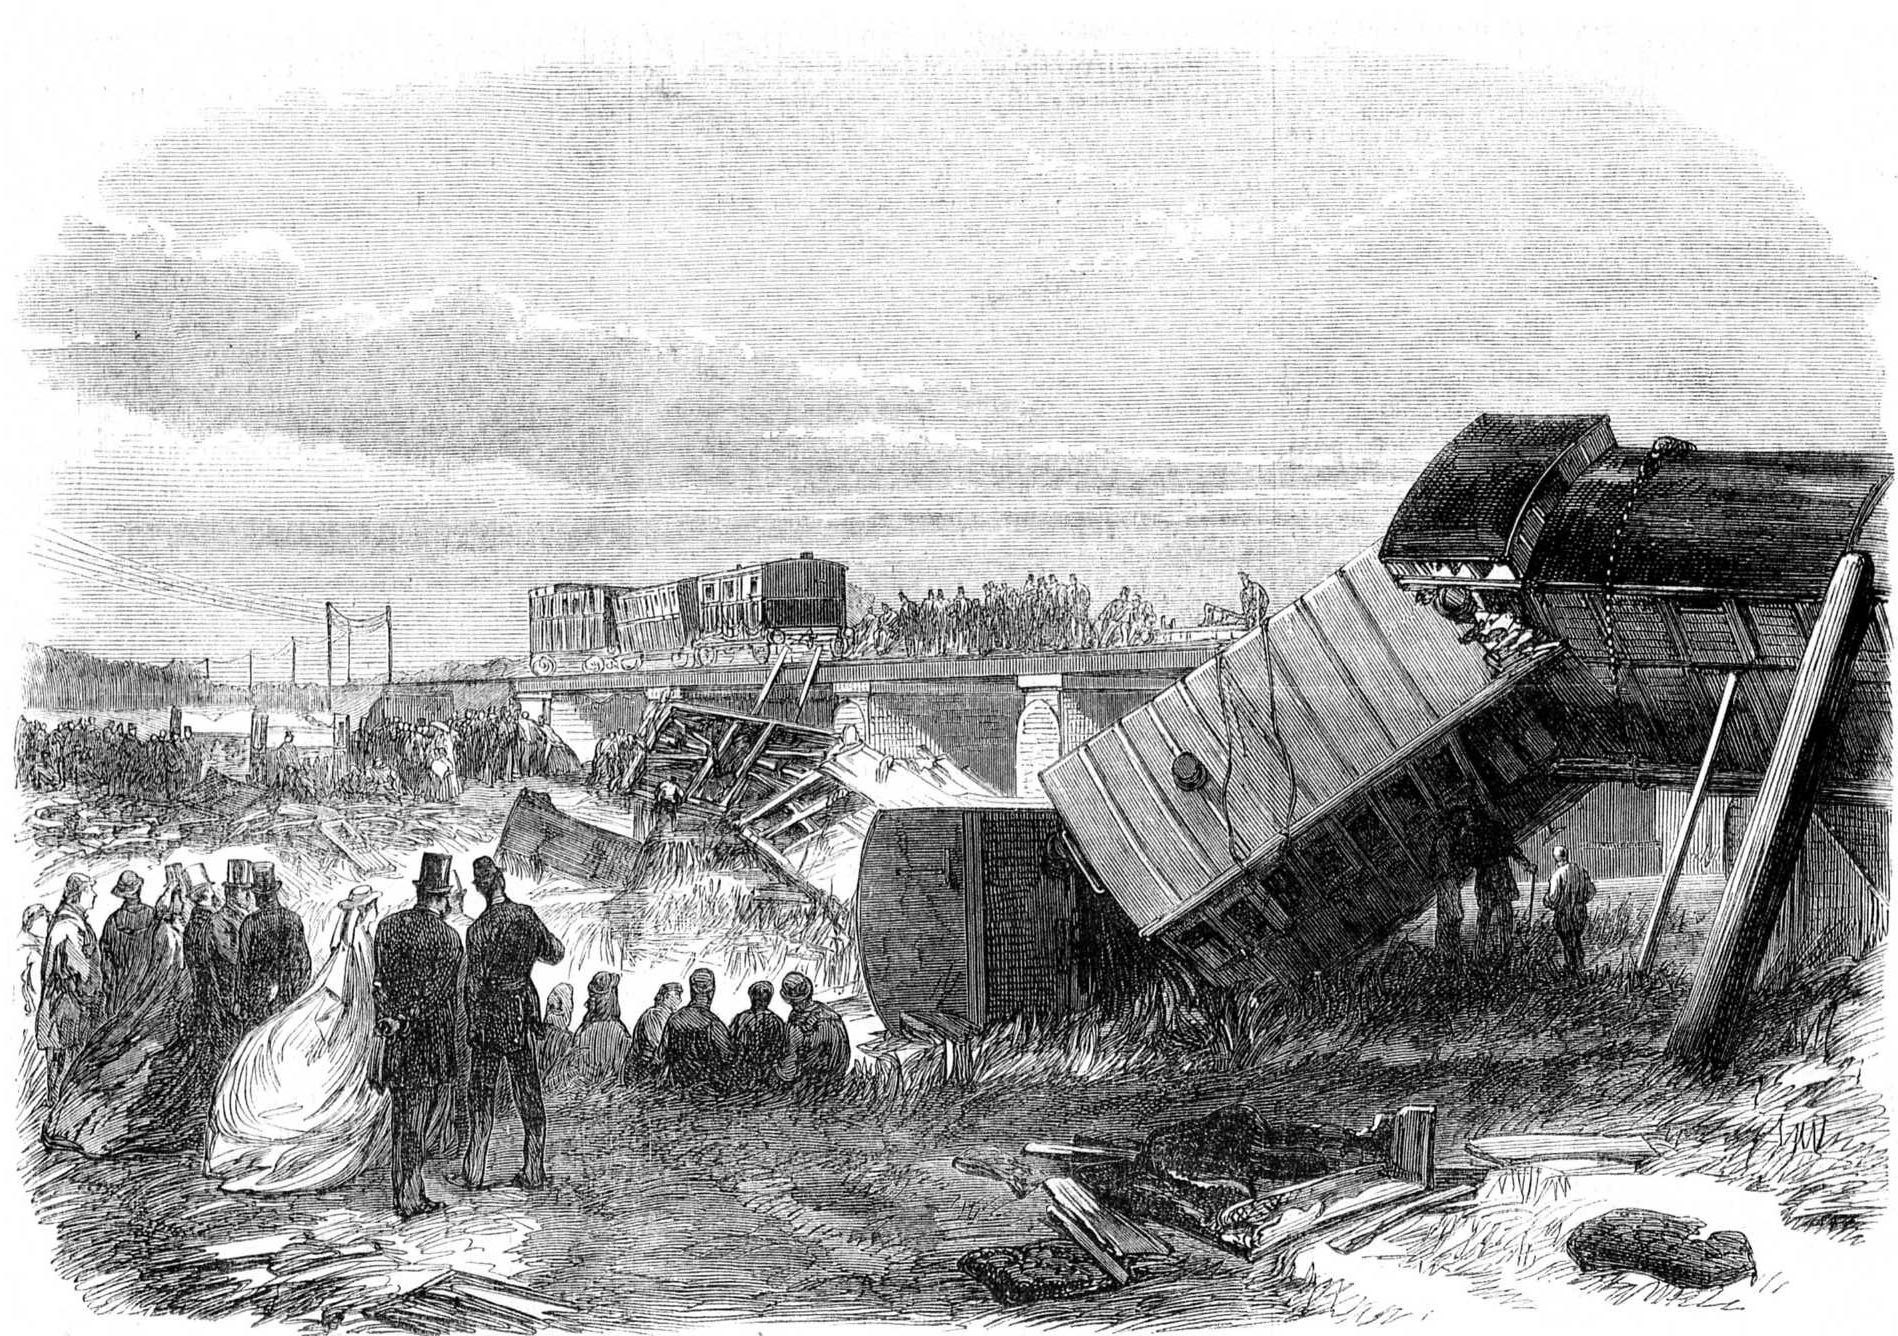 Carriages from the Staplehurst rail crash lie scattered around the river bed.